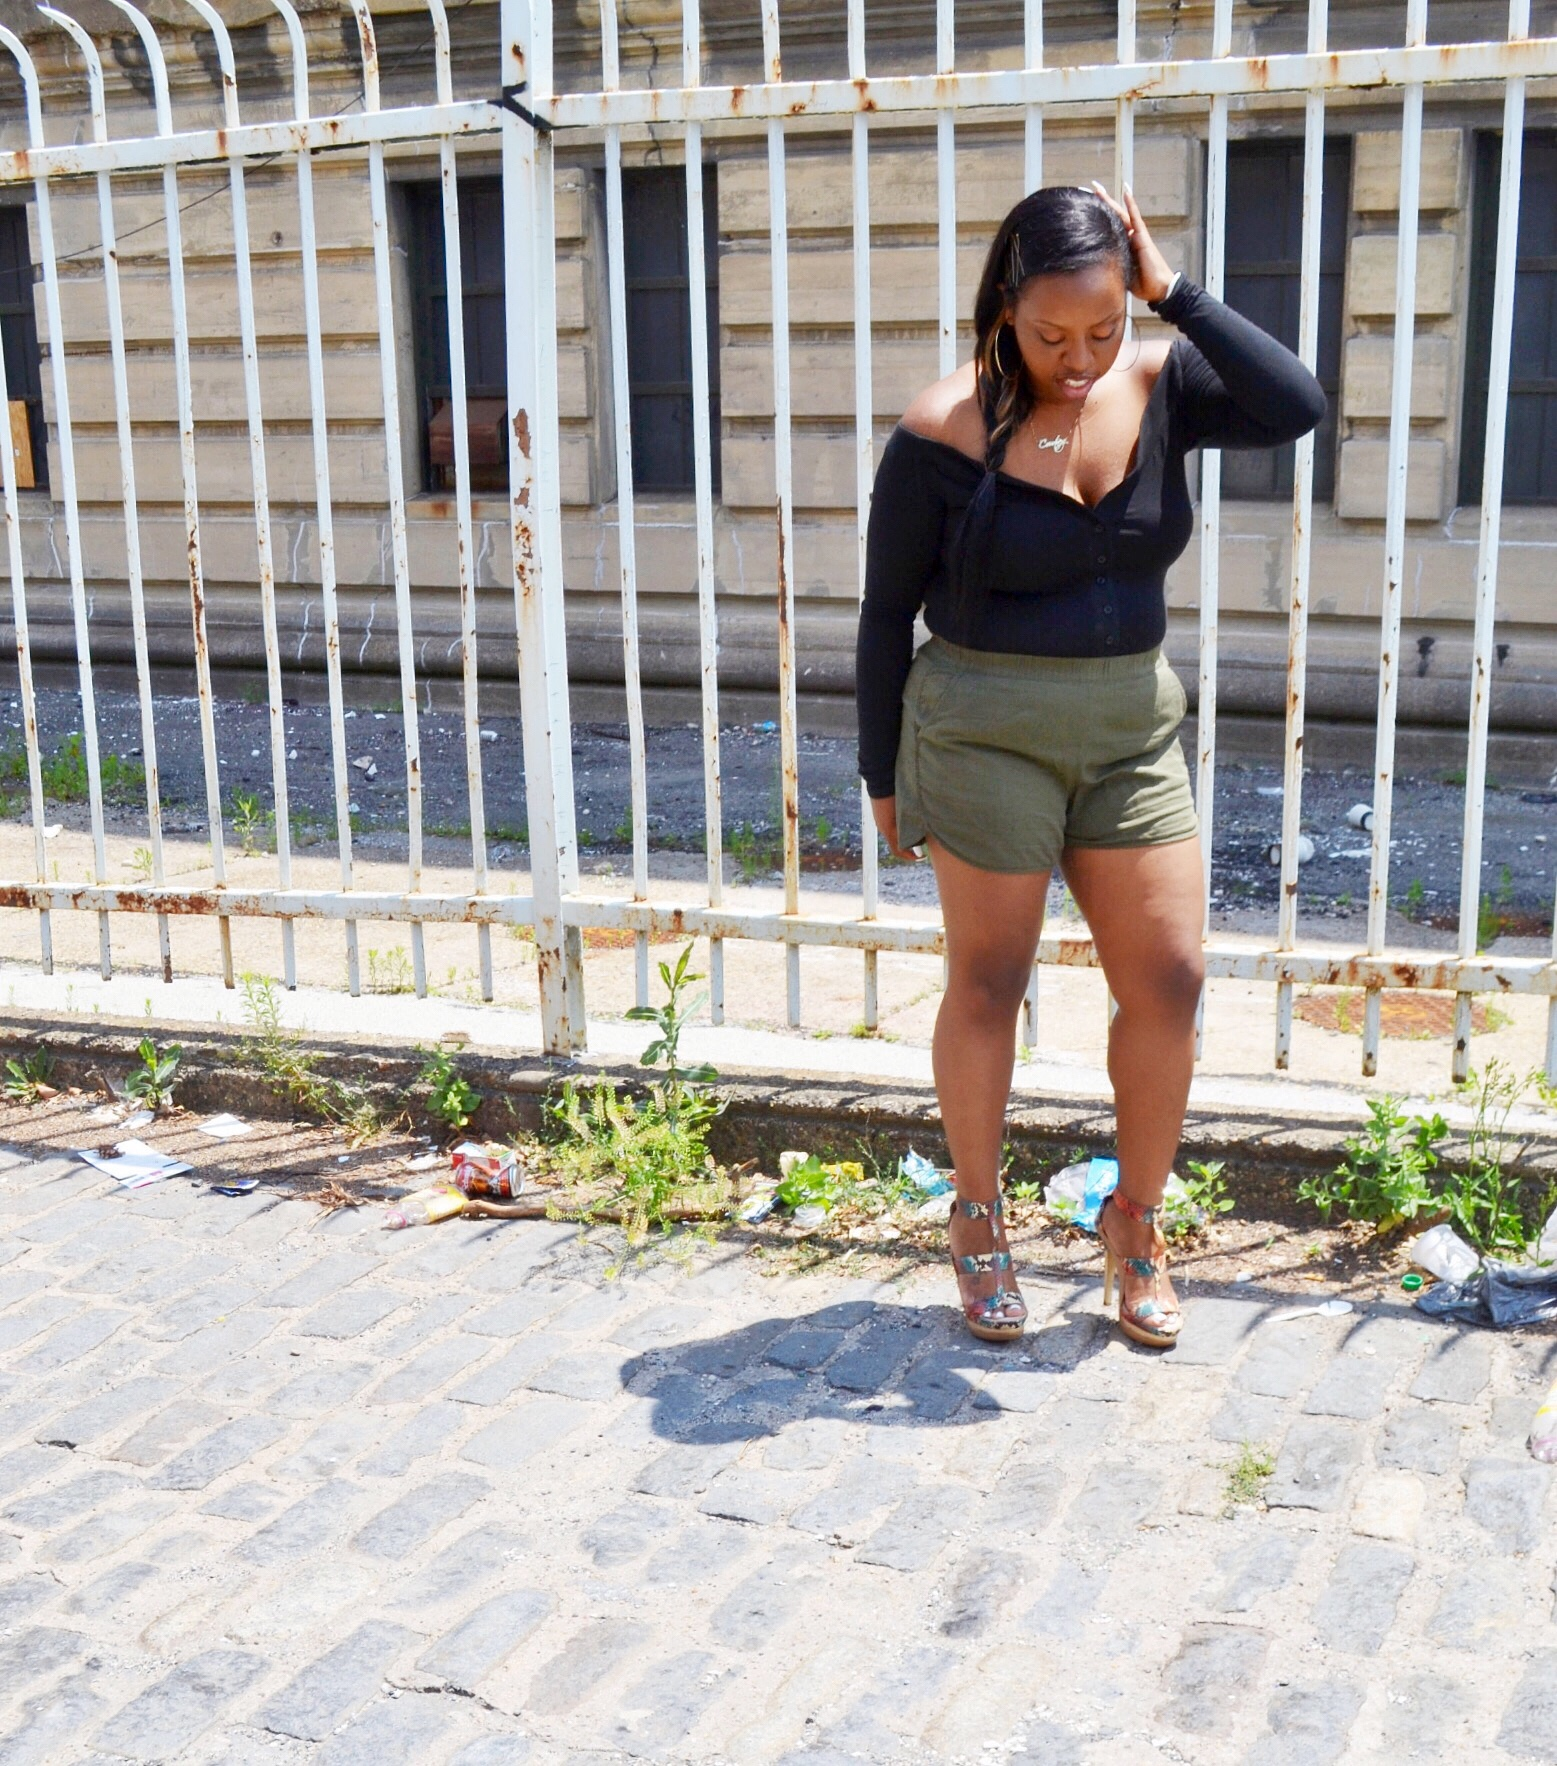 (Bodysuit - The Line by K, Shorts - Madewell, Shoes - BCBG Max Azria)